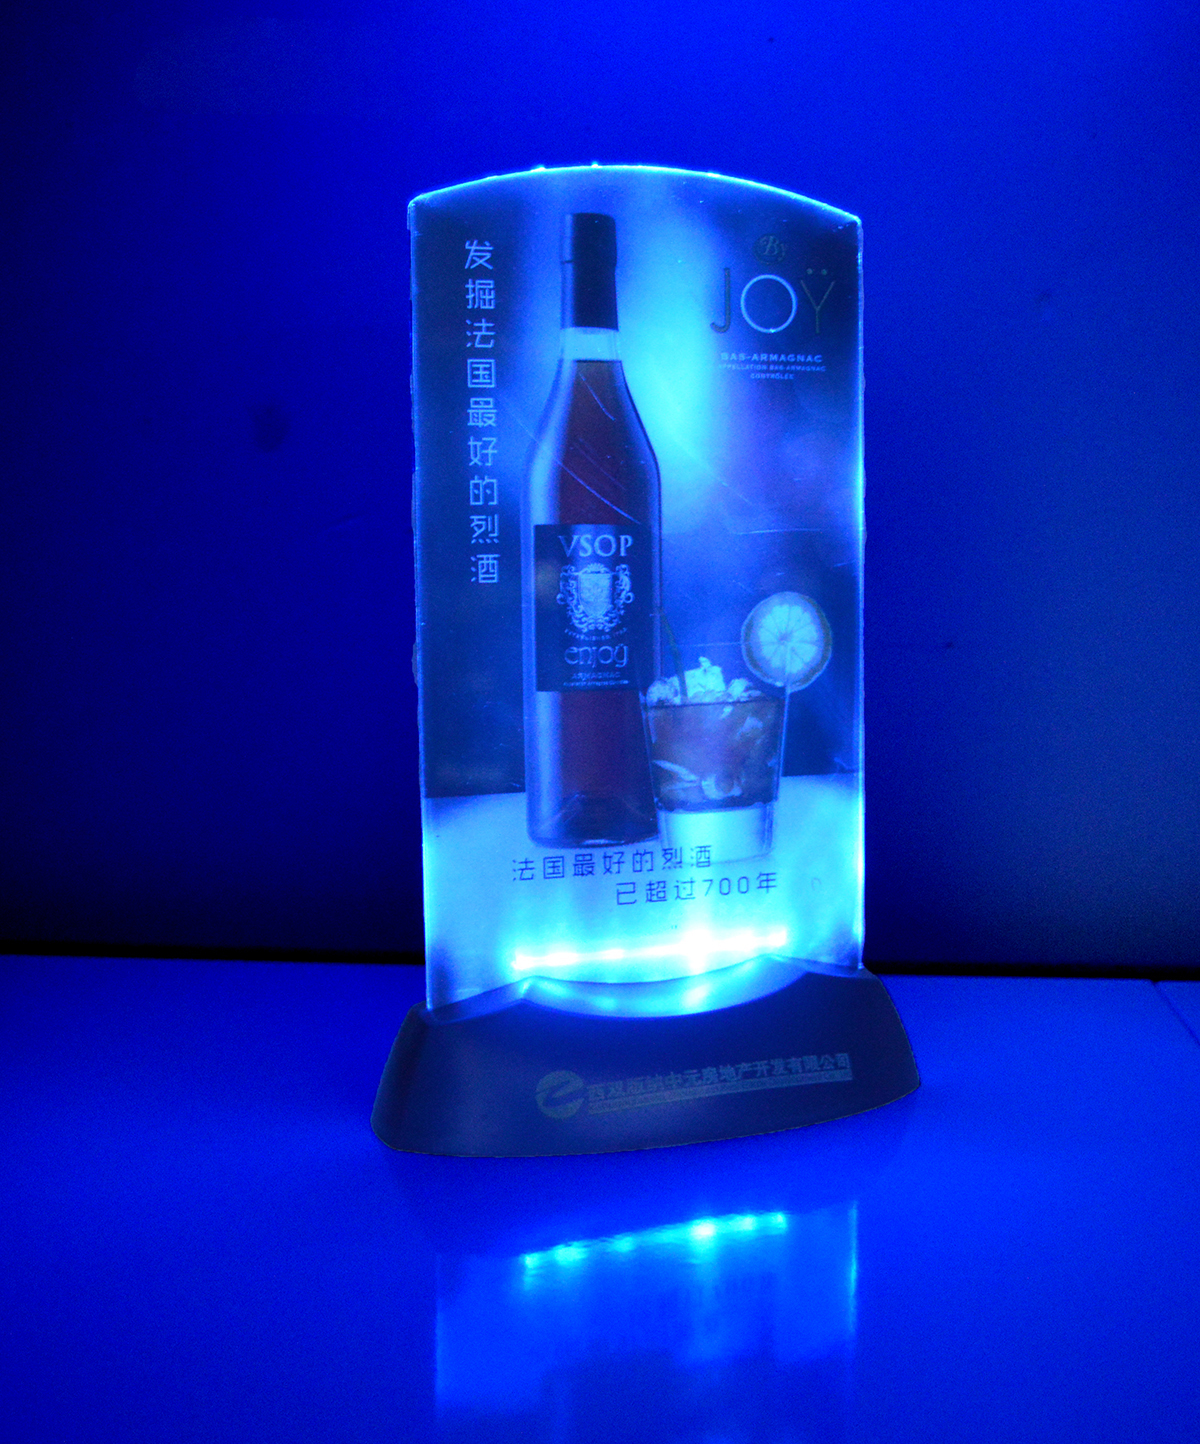 Bar Produk Lampu LED Menu Pemegang LED Mobil Dudukan Cangkir Hot Sale Lampu LED Backlit Menu